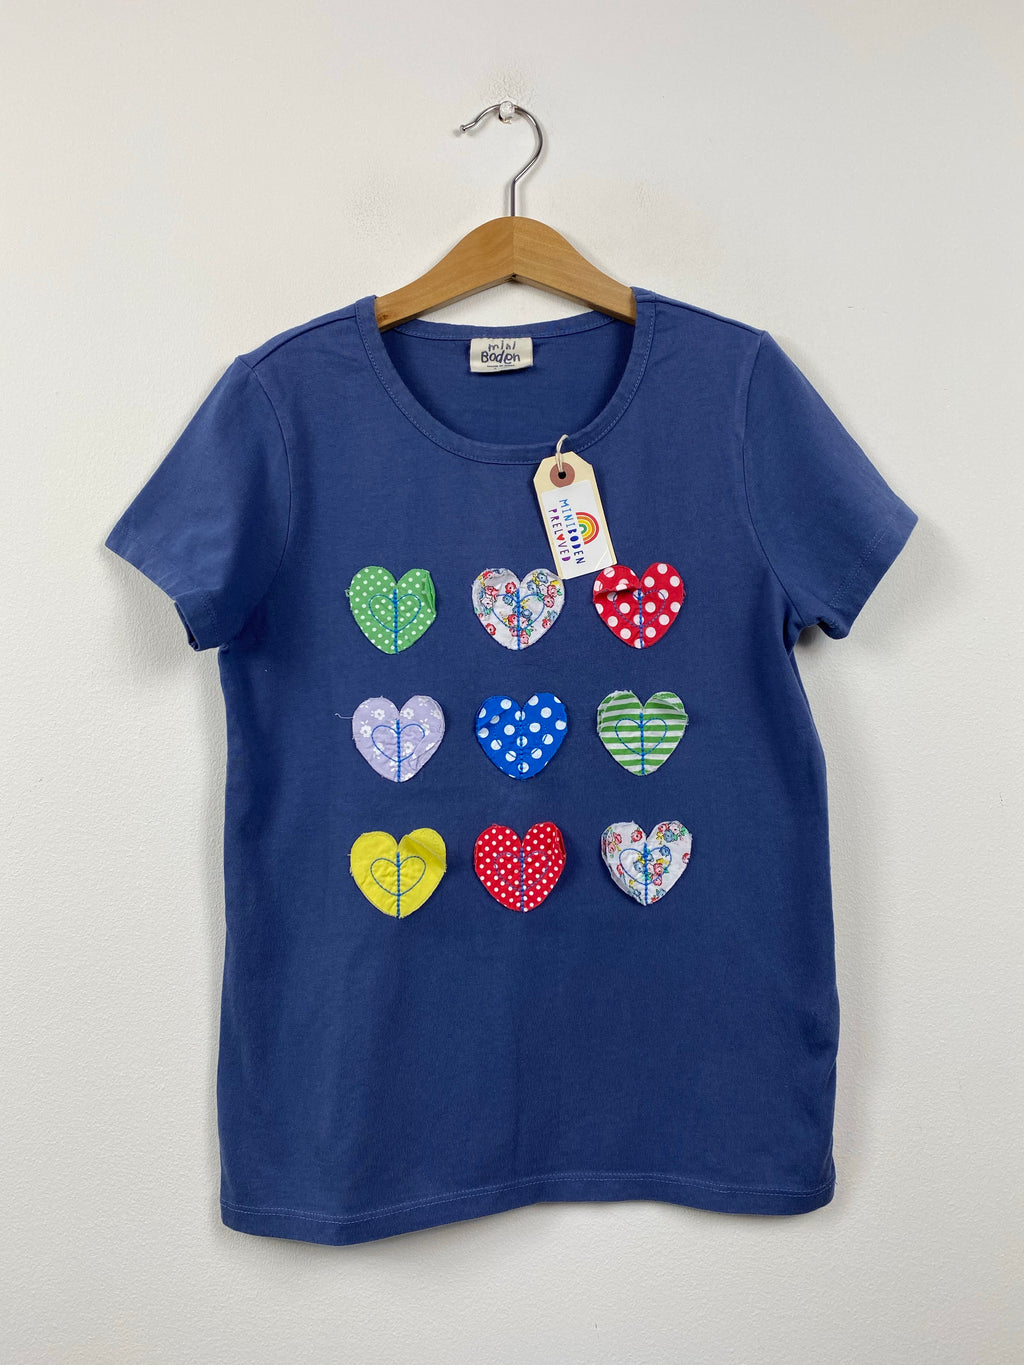 Navy Appliqué Hearts T-Shirt (9-10 Years)